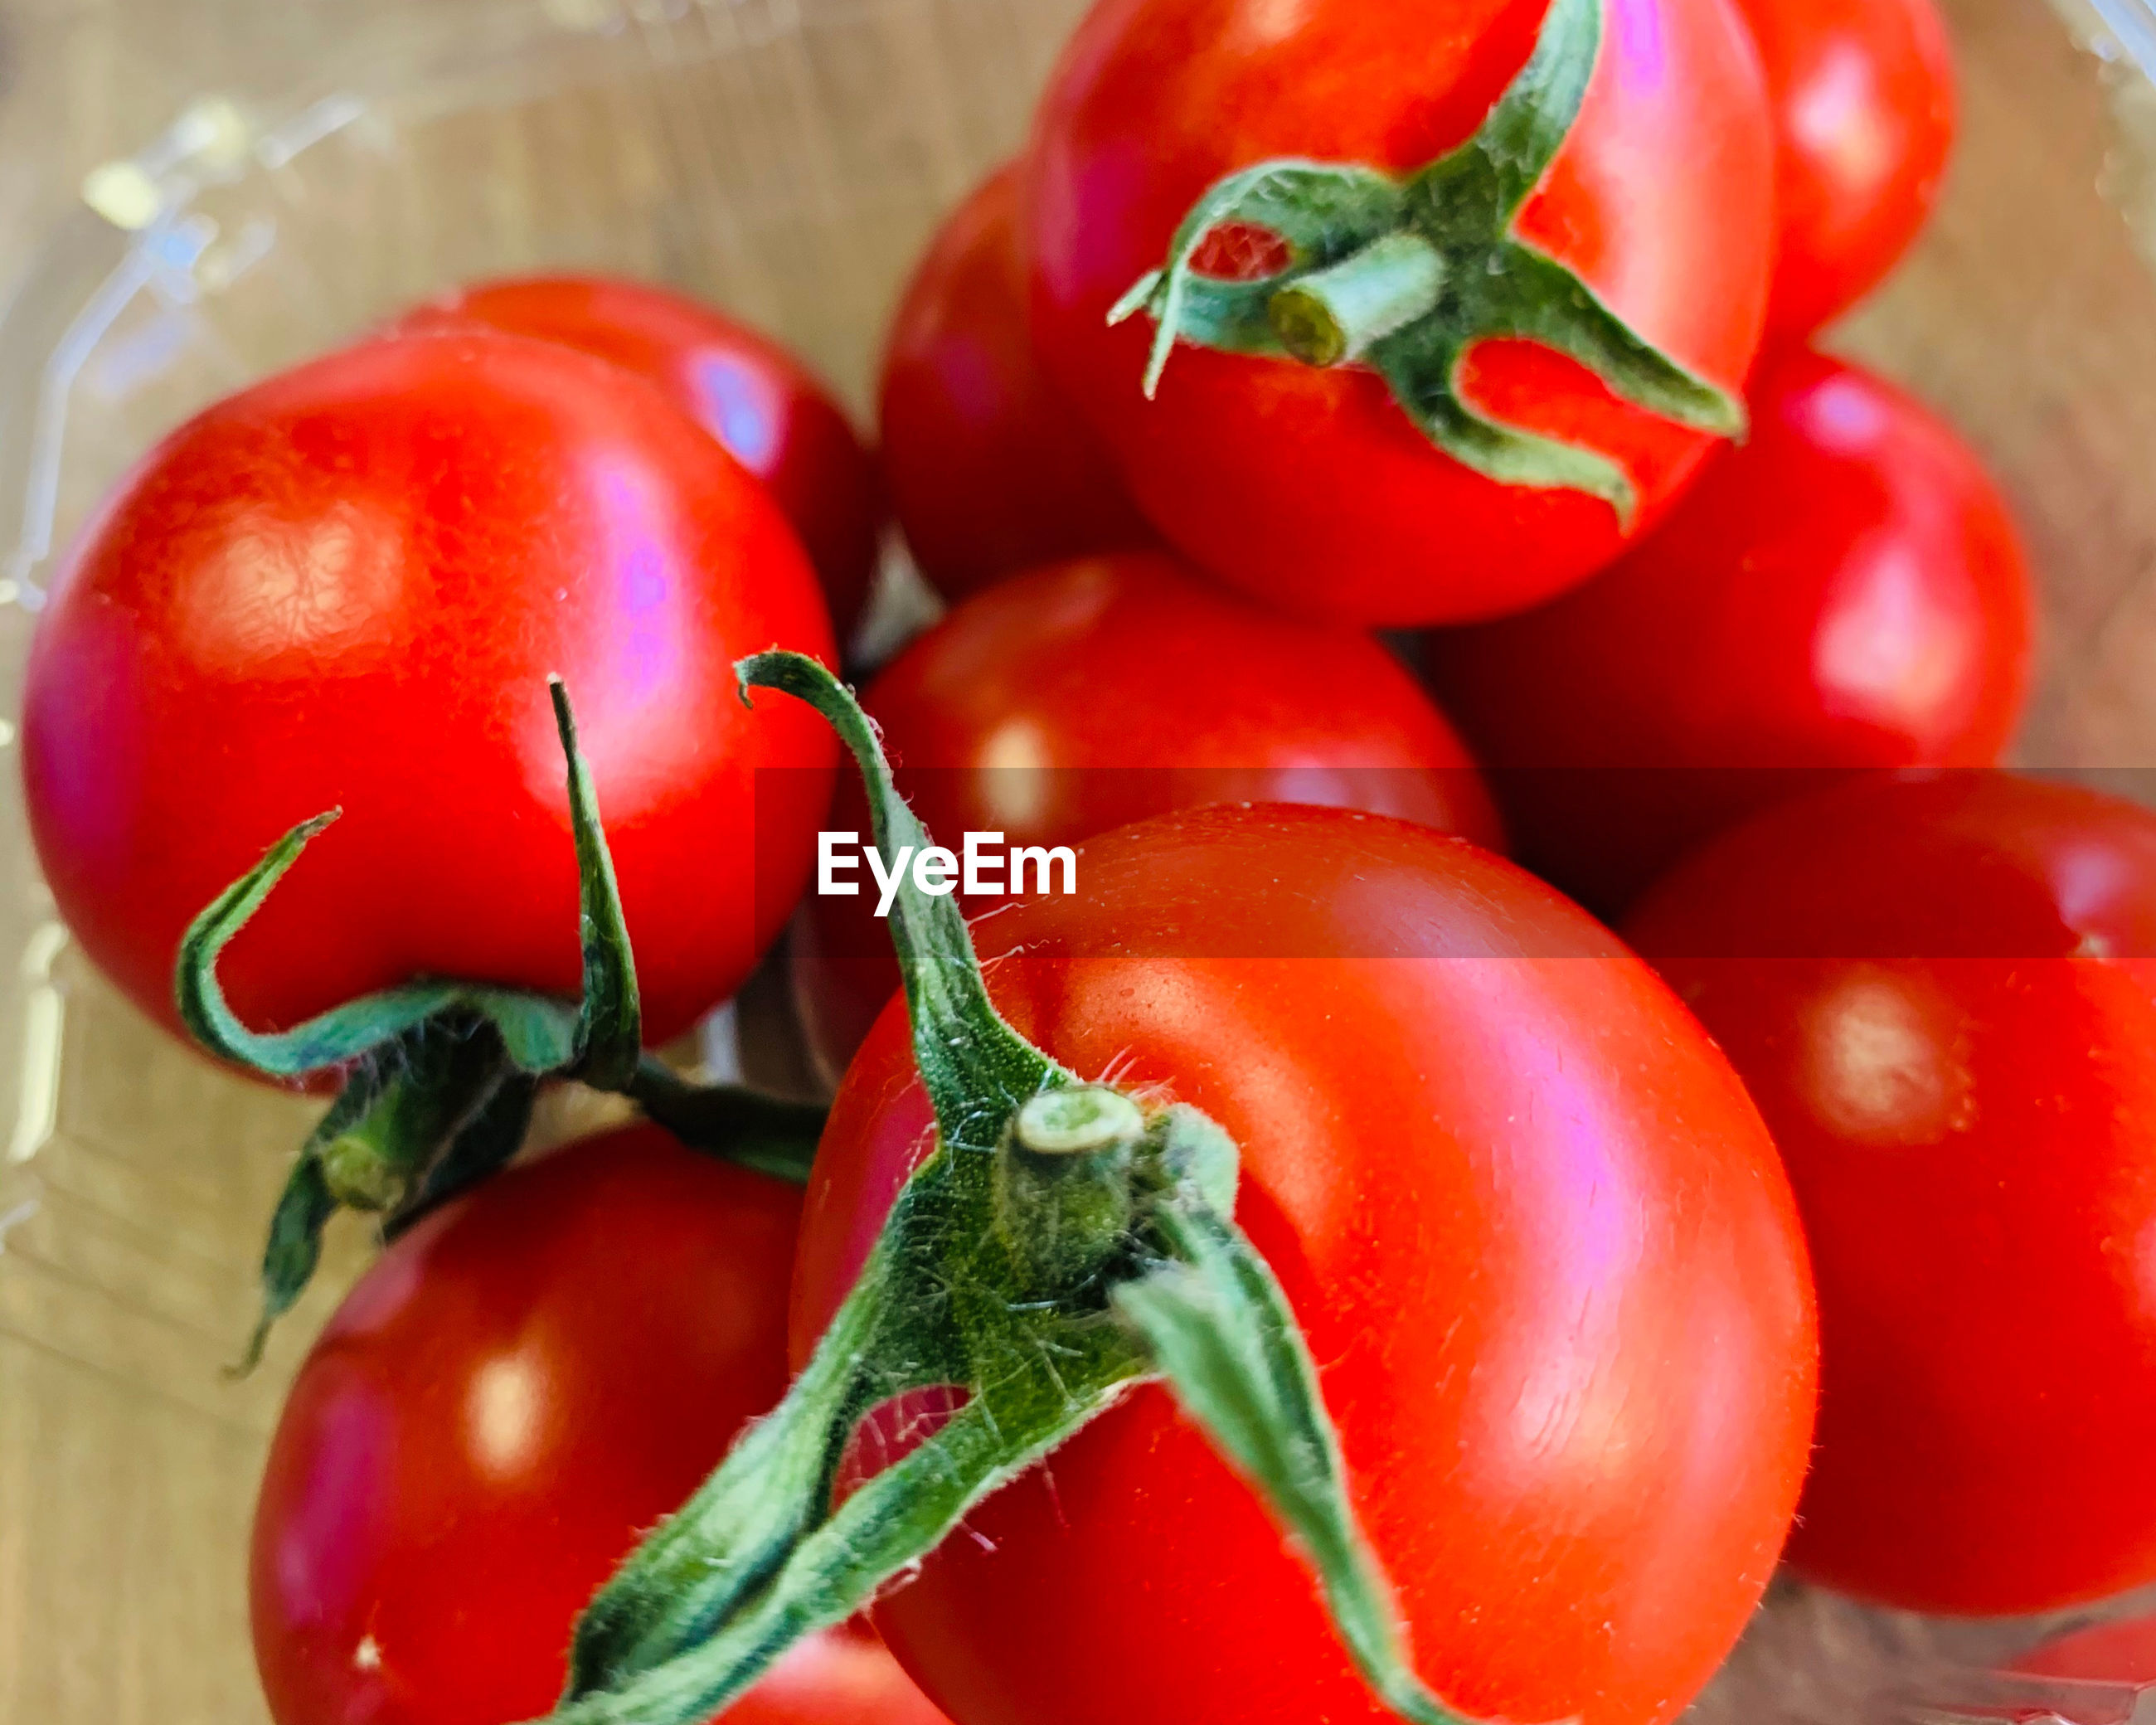 Close-up of tomatoes in bowl